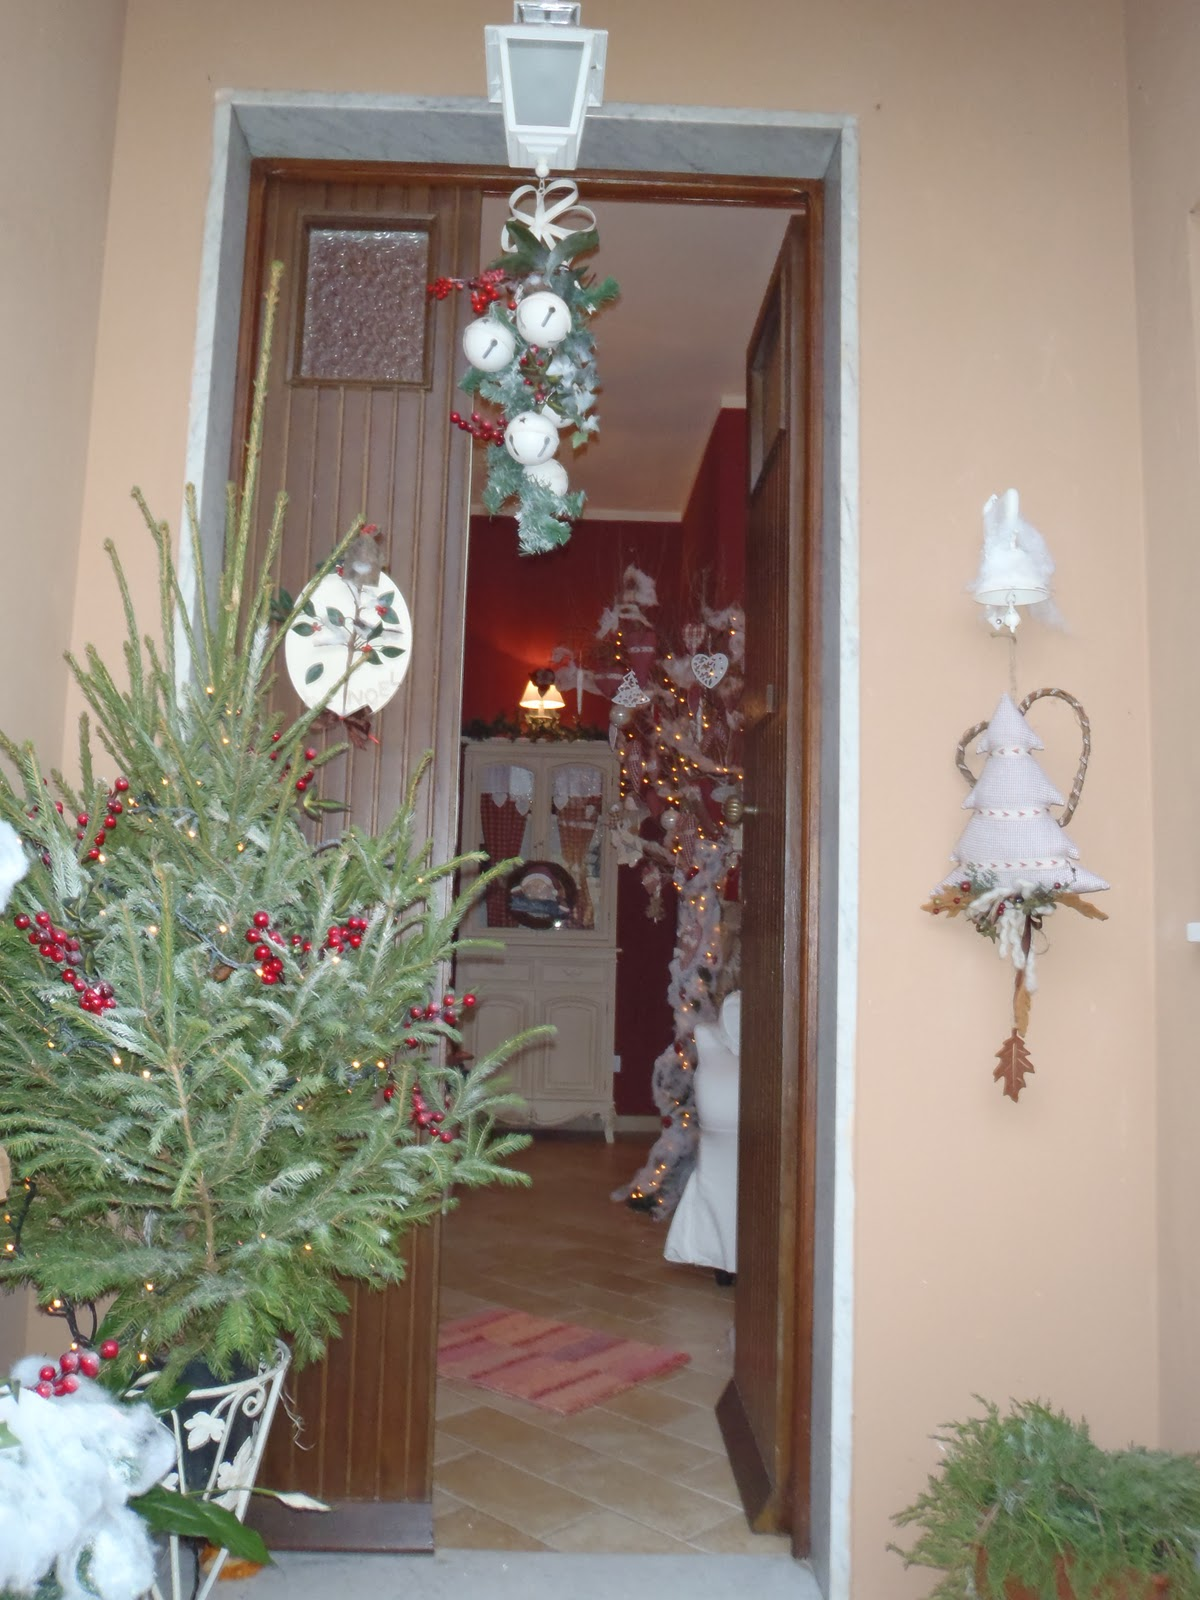 Il gufo e la luna shabby chic country style natale - Natale country decorazioni ...